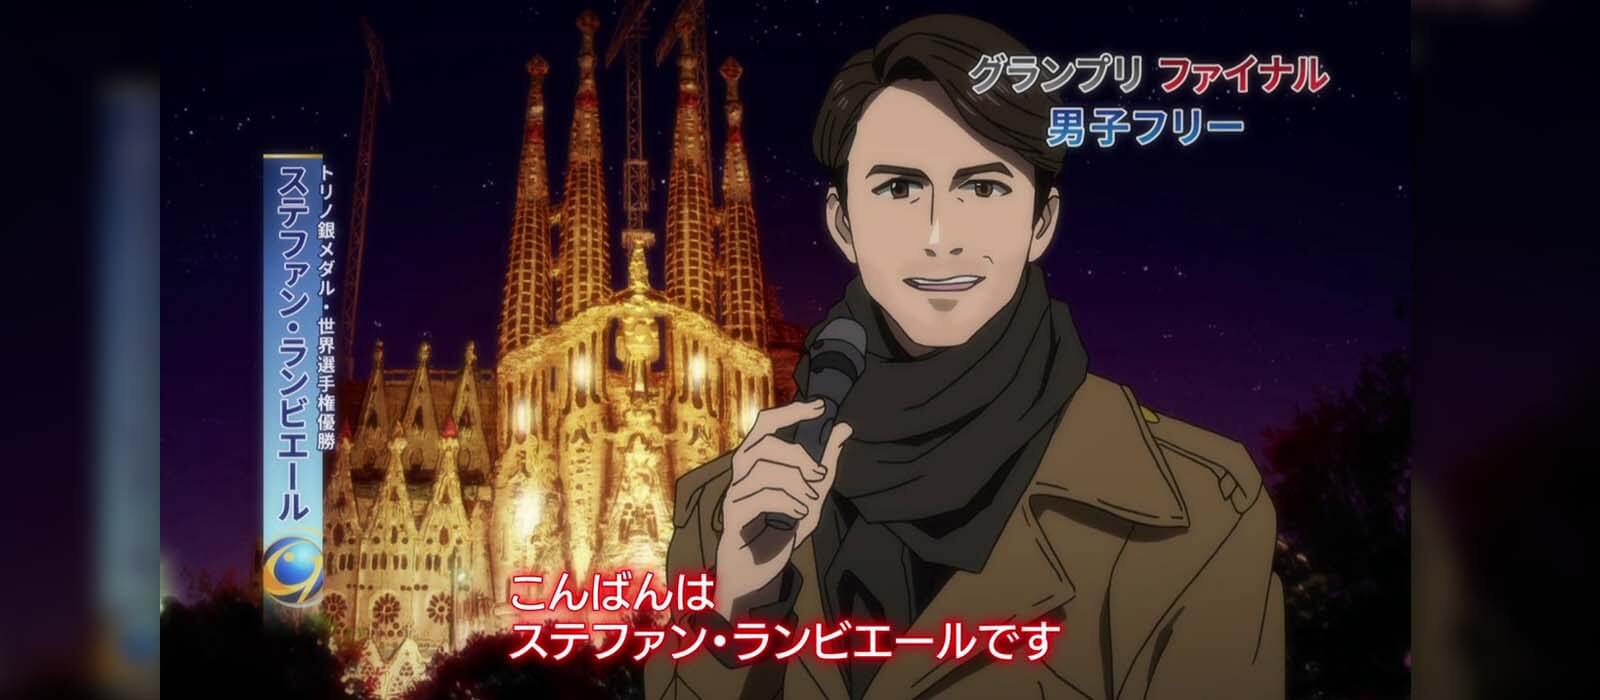 Stéphane Lambiel's guest appearance in Episode 12 of Yuri!!! on ICE